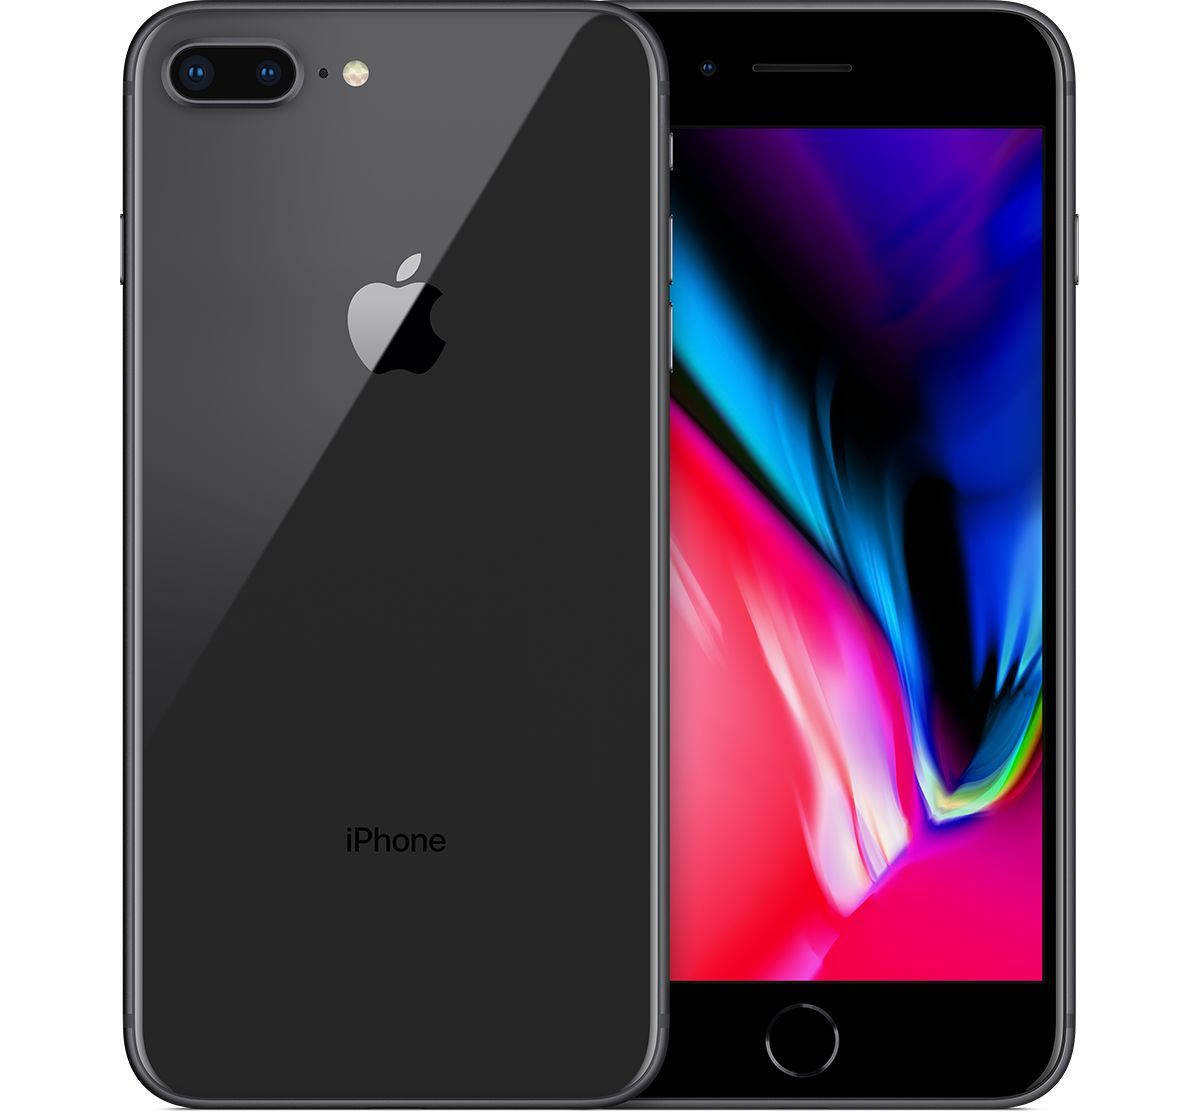 Download Ios Firmware File For Iphone Now Down Here Are The Direct Links For The Iphone 8 Gsm Cdma Ios 11 3 1 Iphone Apple Iphone Iphone 8 Plus